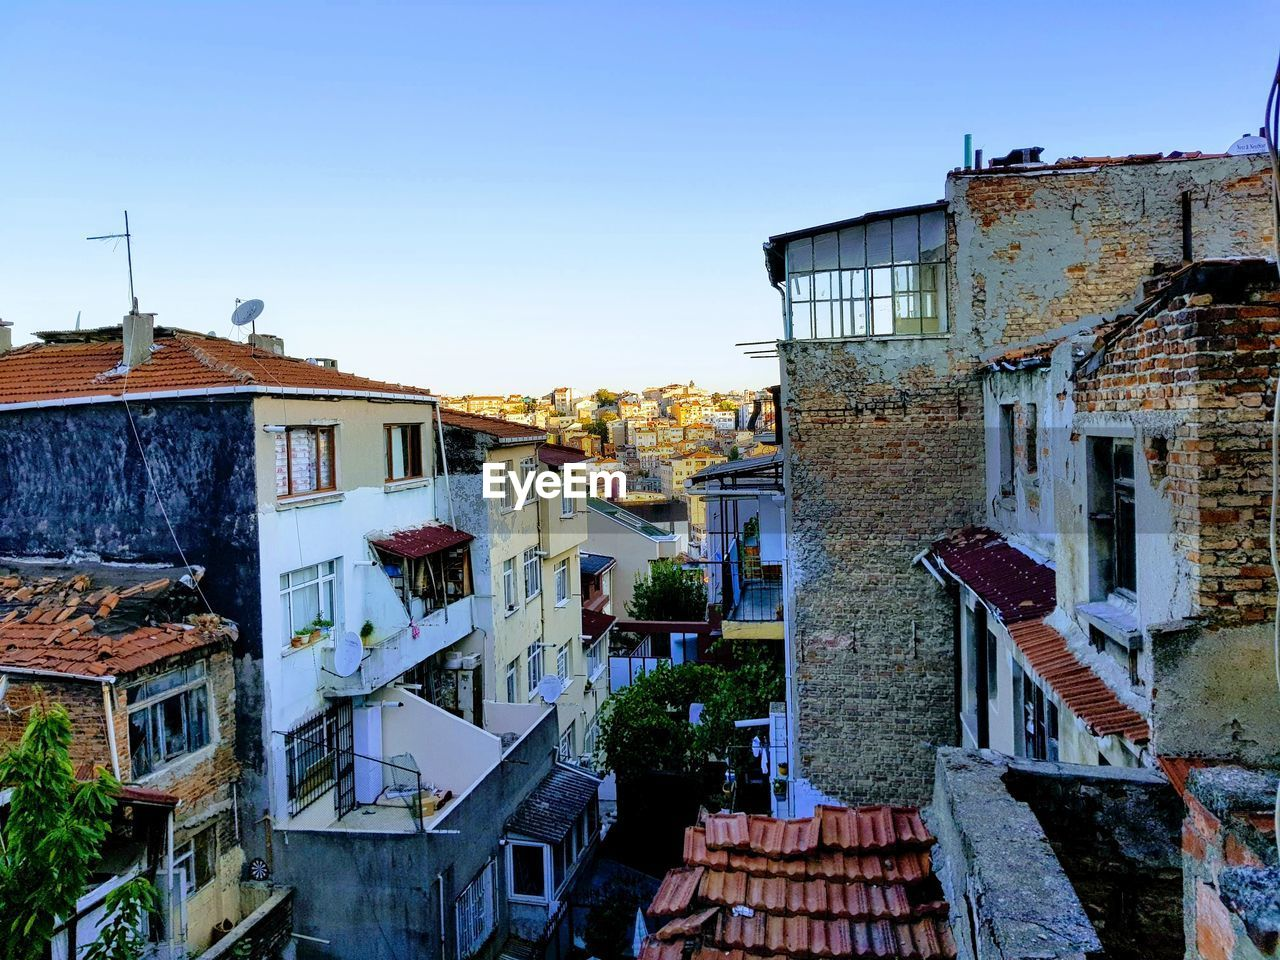 architecture, building exterior, built structure, building, sky, residential district, clear sky, city, nature, no people, house, town, day, roof, outdoors, blue, copy space, old, window, community, townscape, apartment